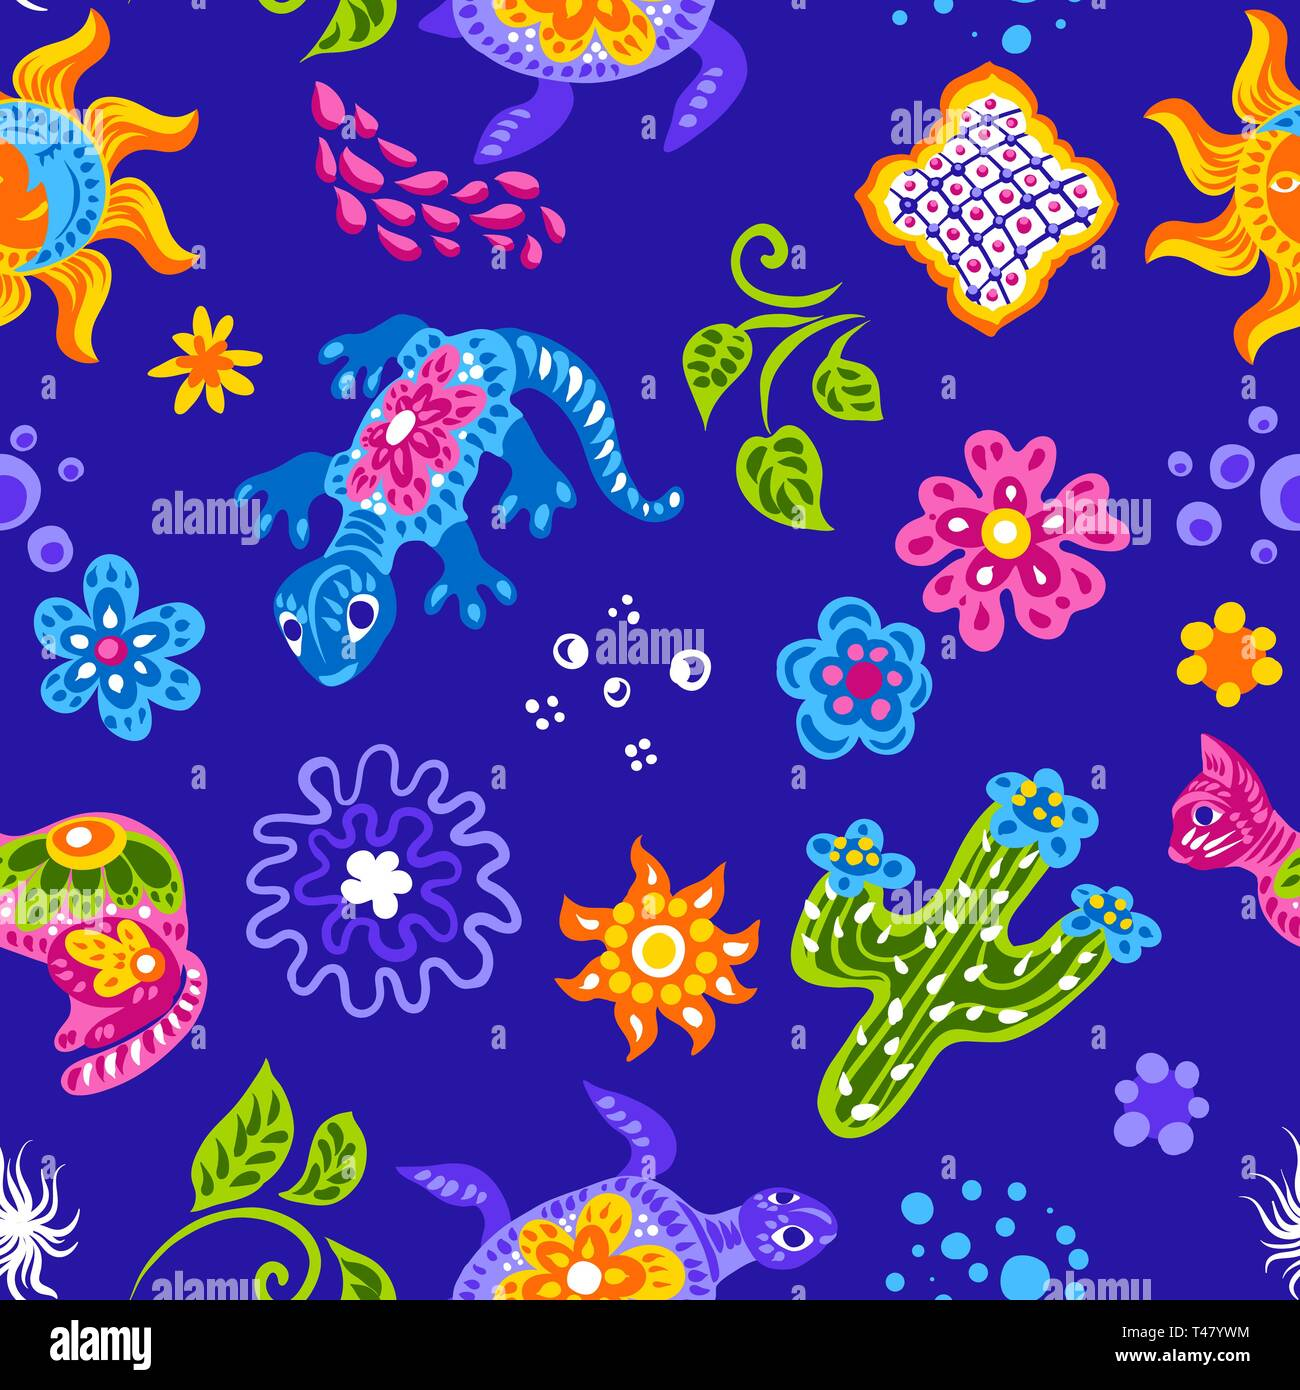 Mexican pattern with cute naive art items. - Stock Vector